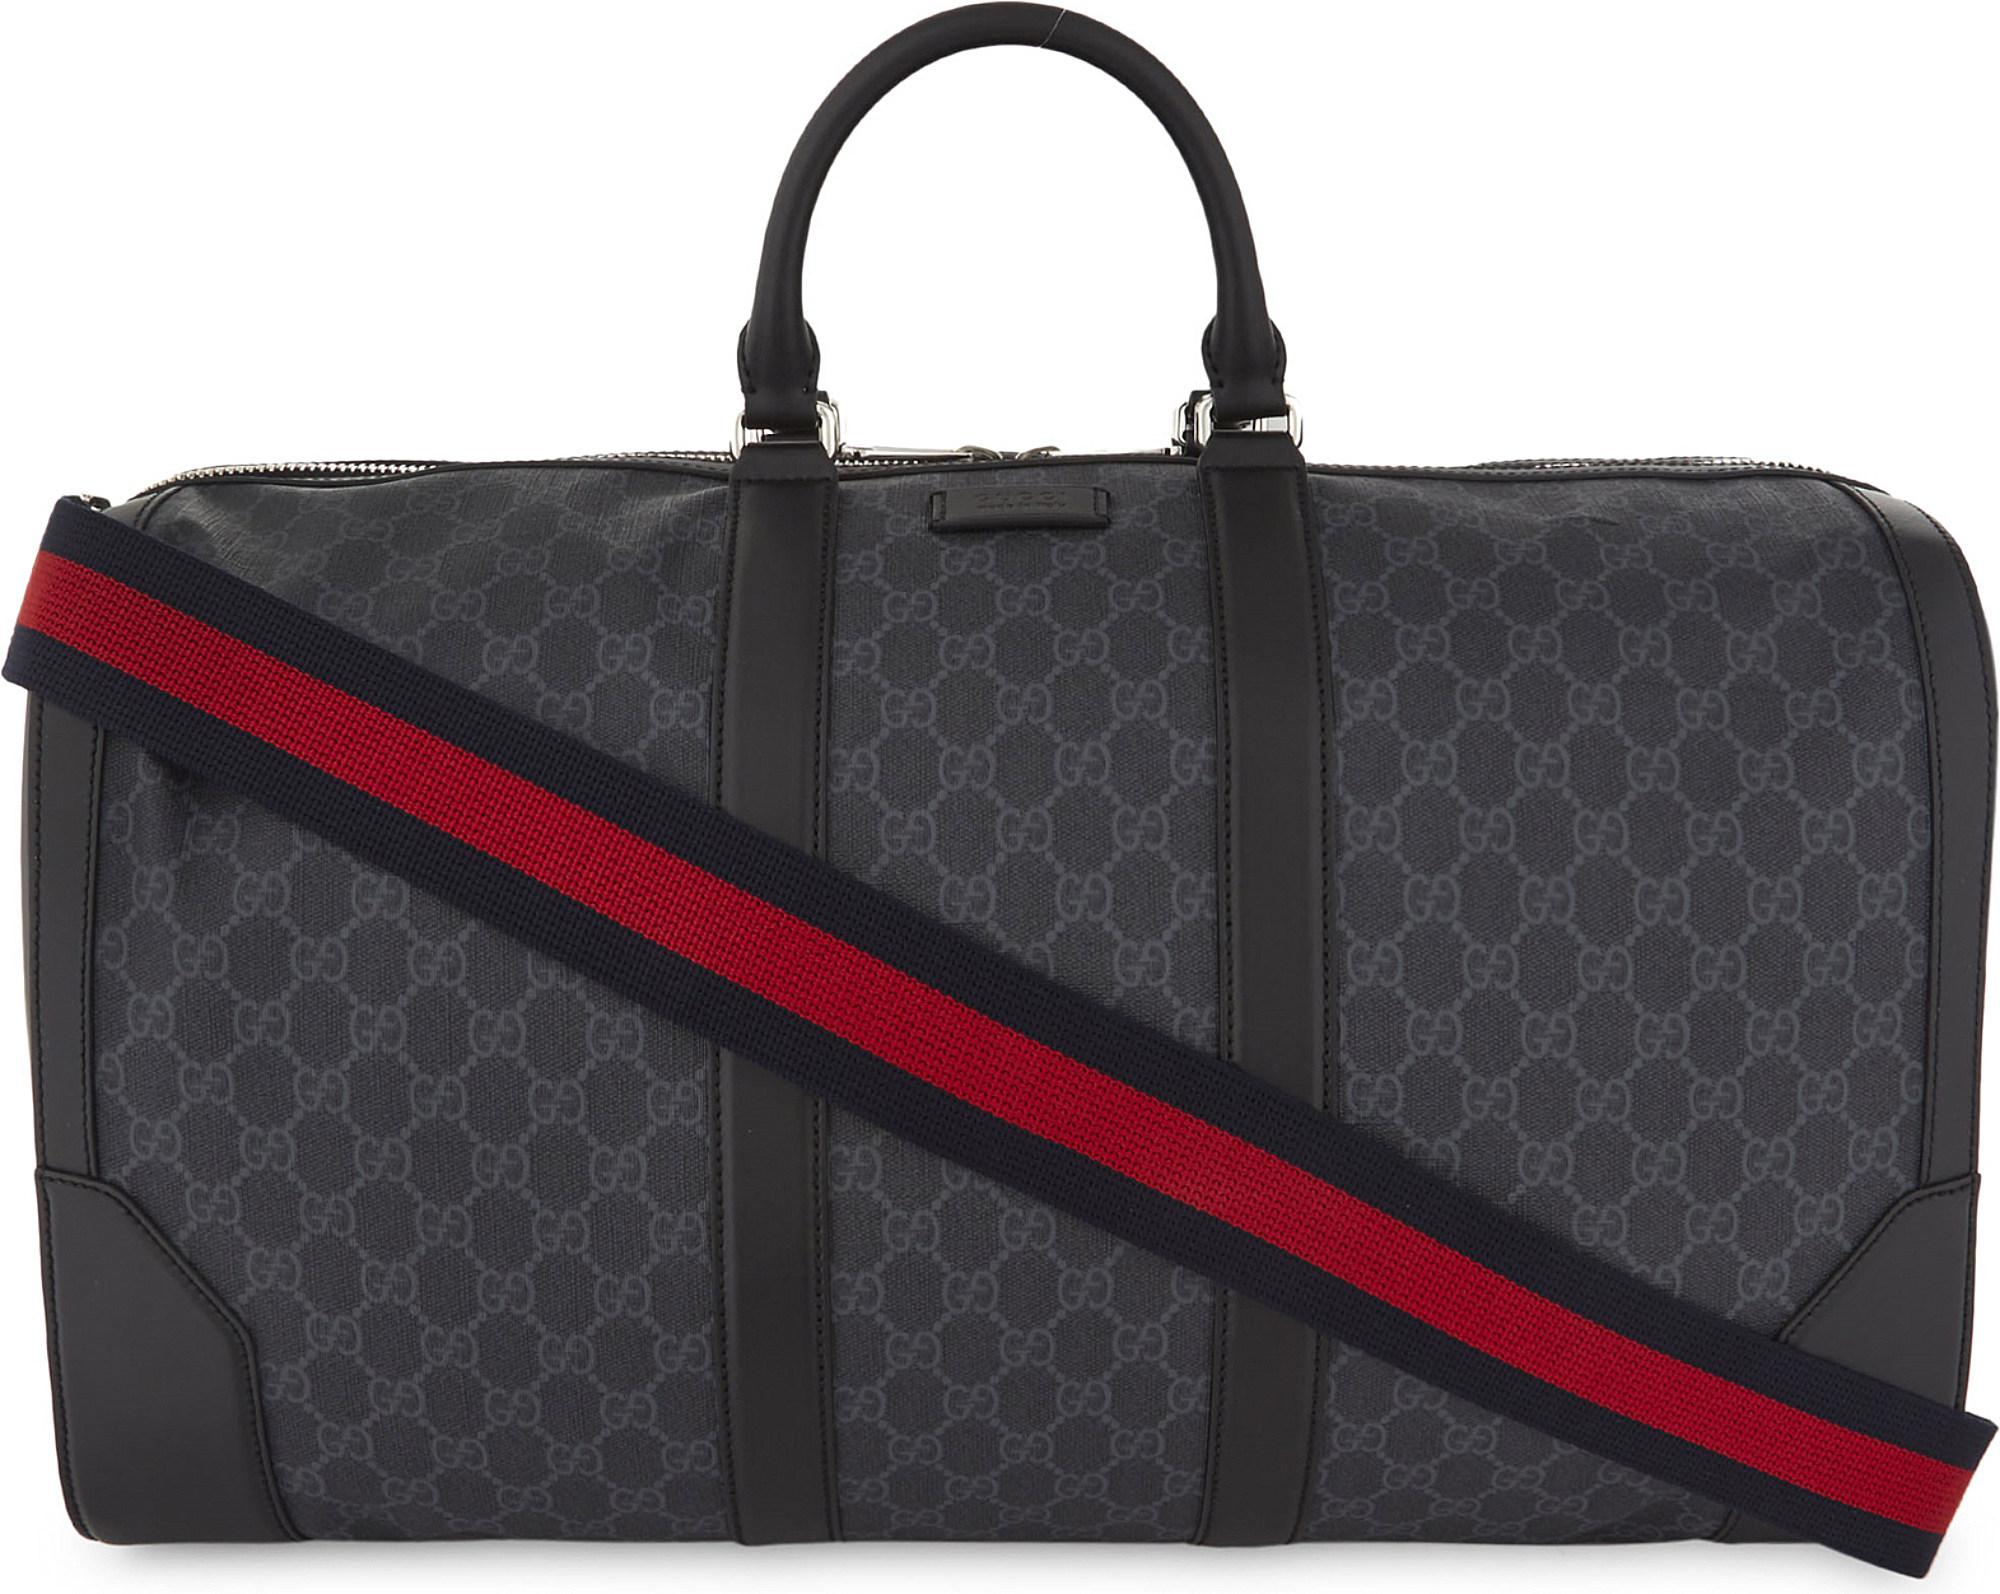 c17966594fd9 Lyst - Gucci Supreme Canvas Duffel Bag in Black for Men